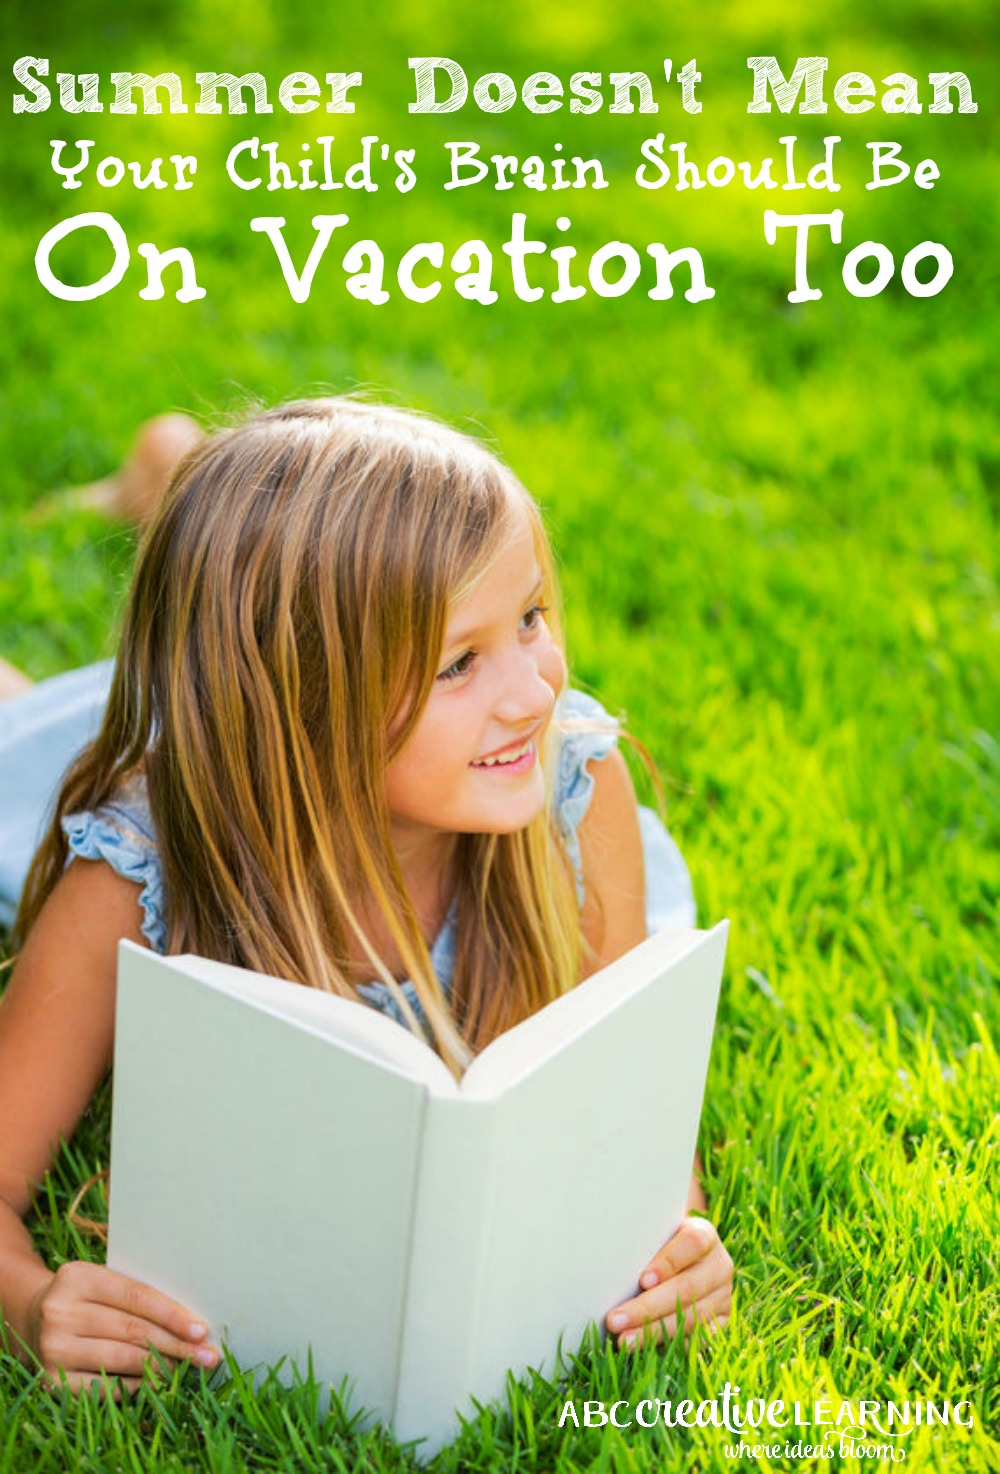 Summer Doesn't Mean Your Child's Brain Should Be On Vacation Too! Check out some of these easy tips to keep your child from falling behind this summer!